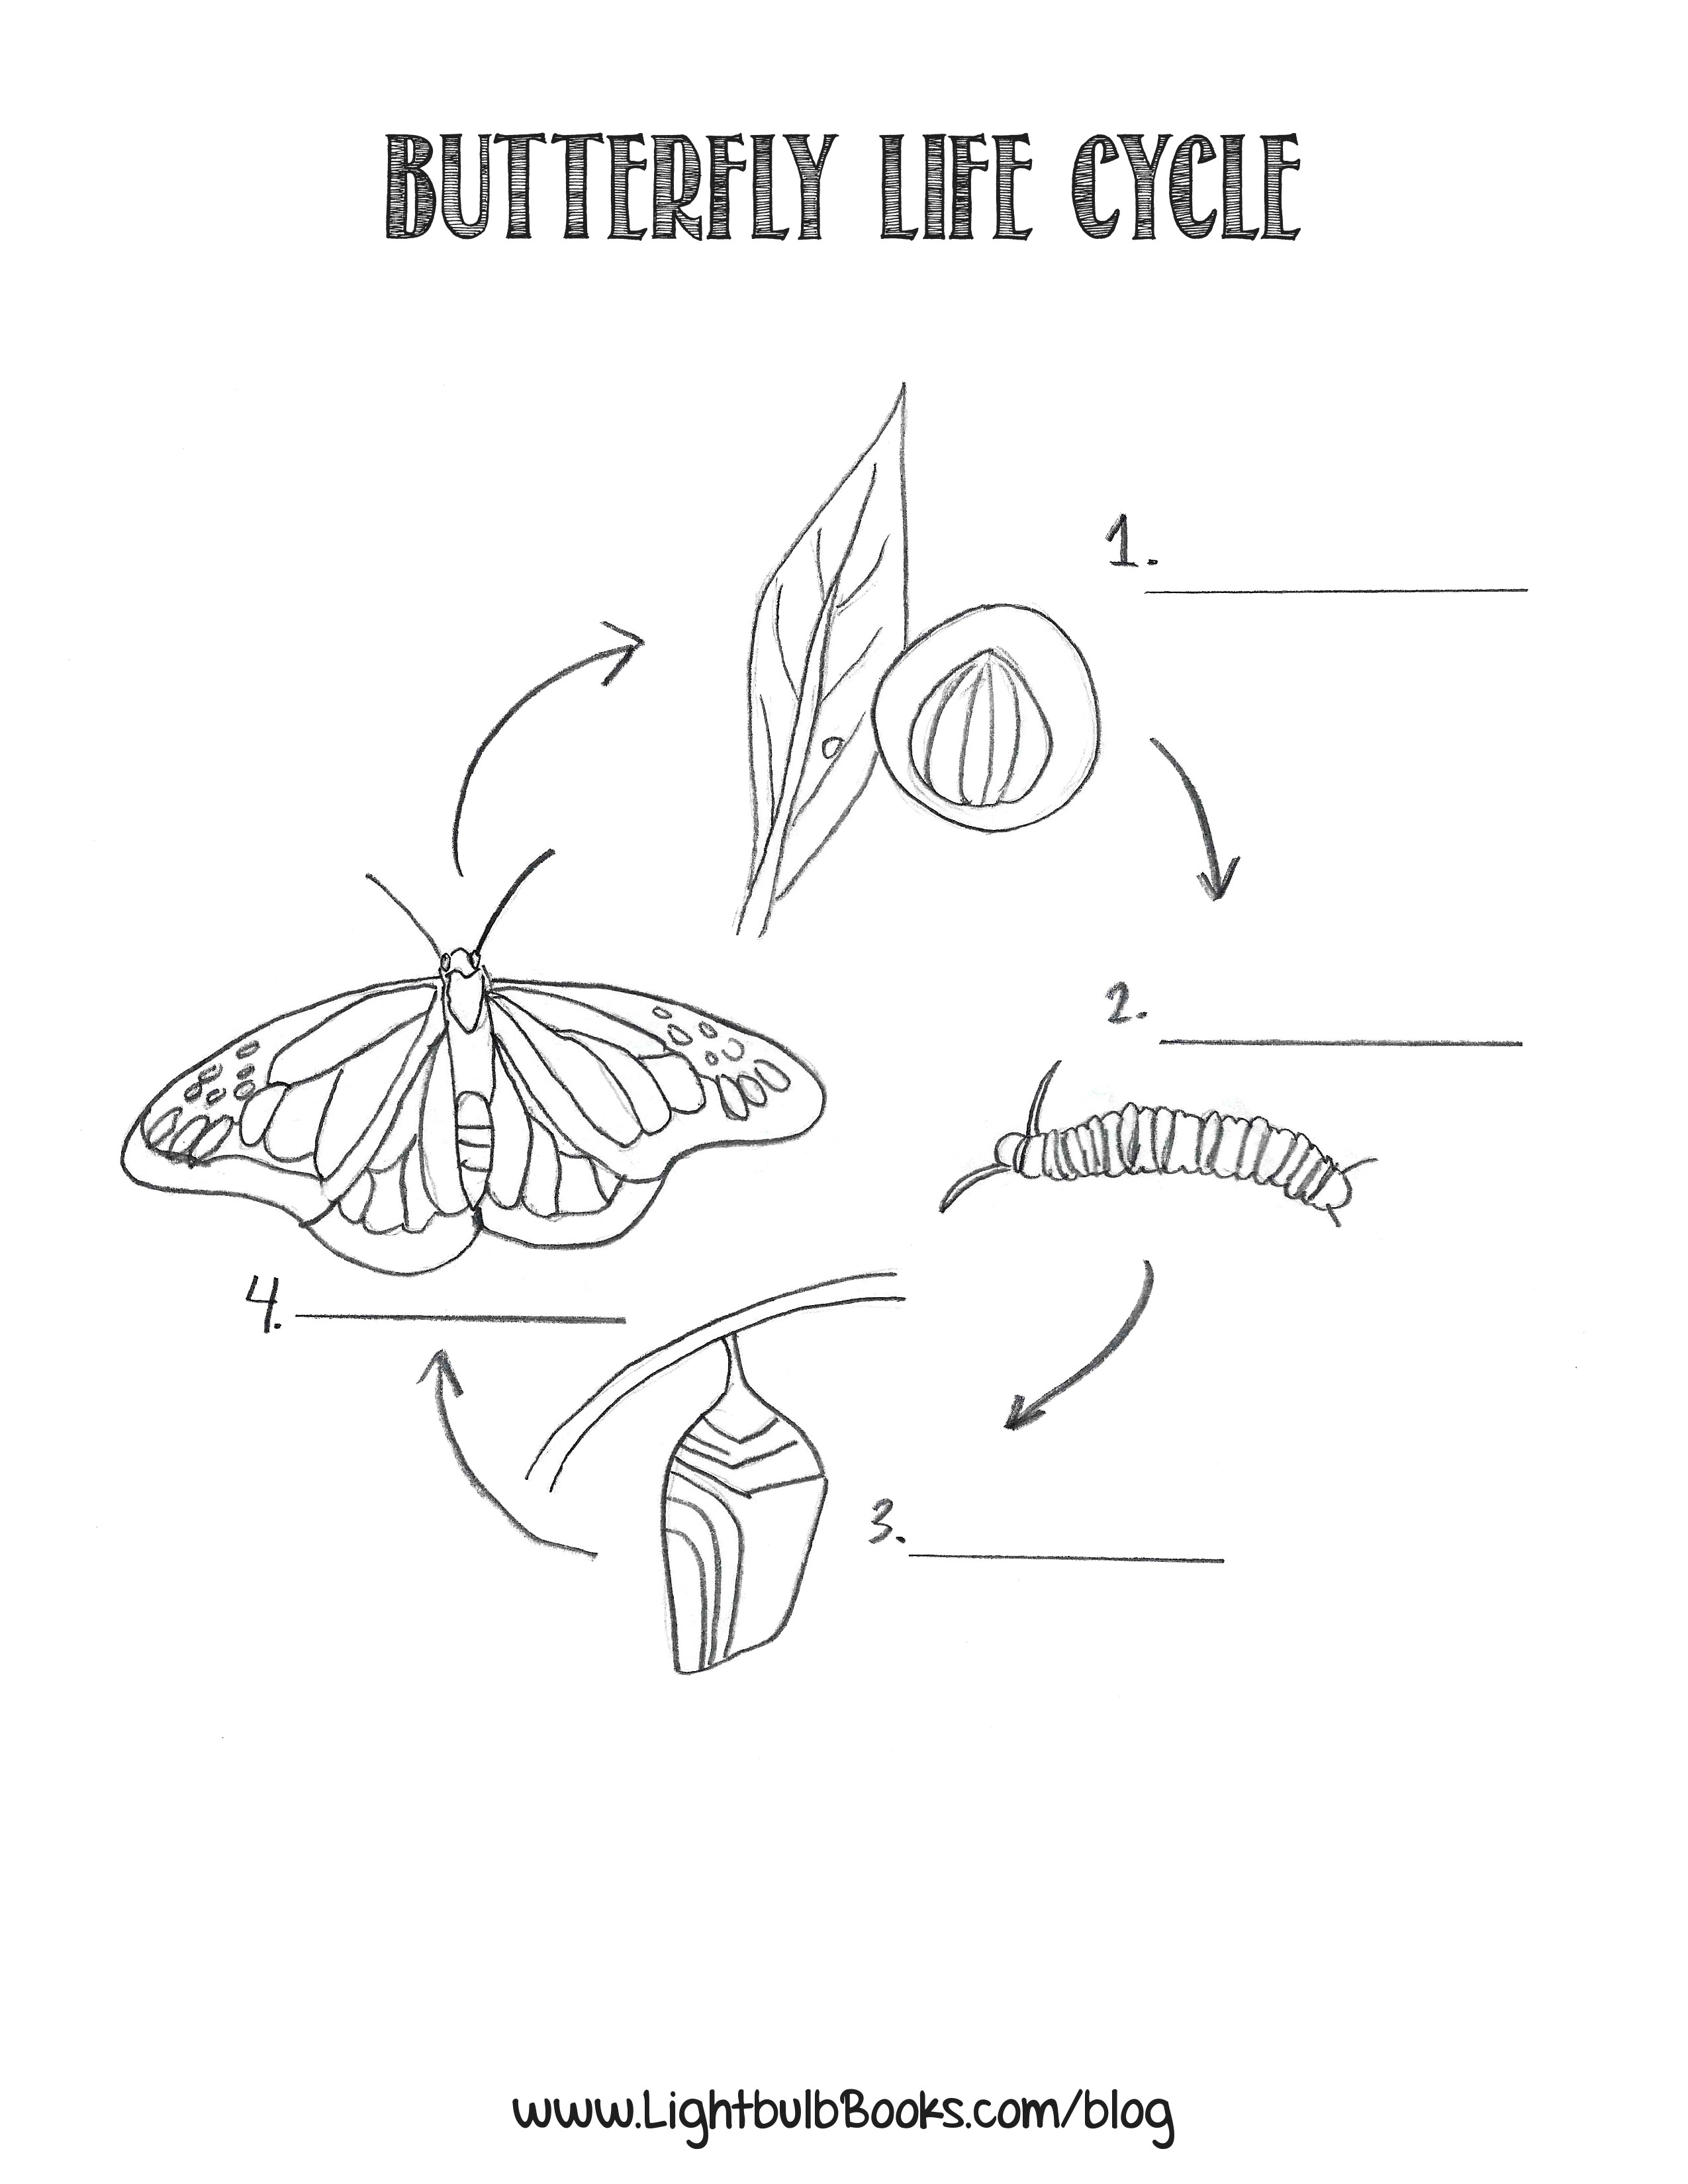 butterfly life cycle coloring page - butterfly life cycle coloring pages